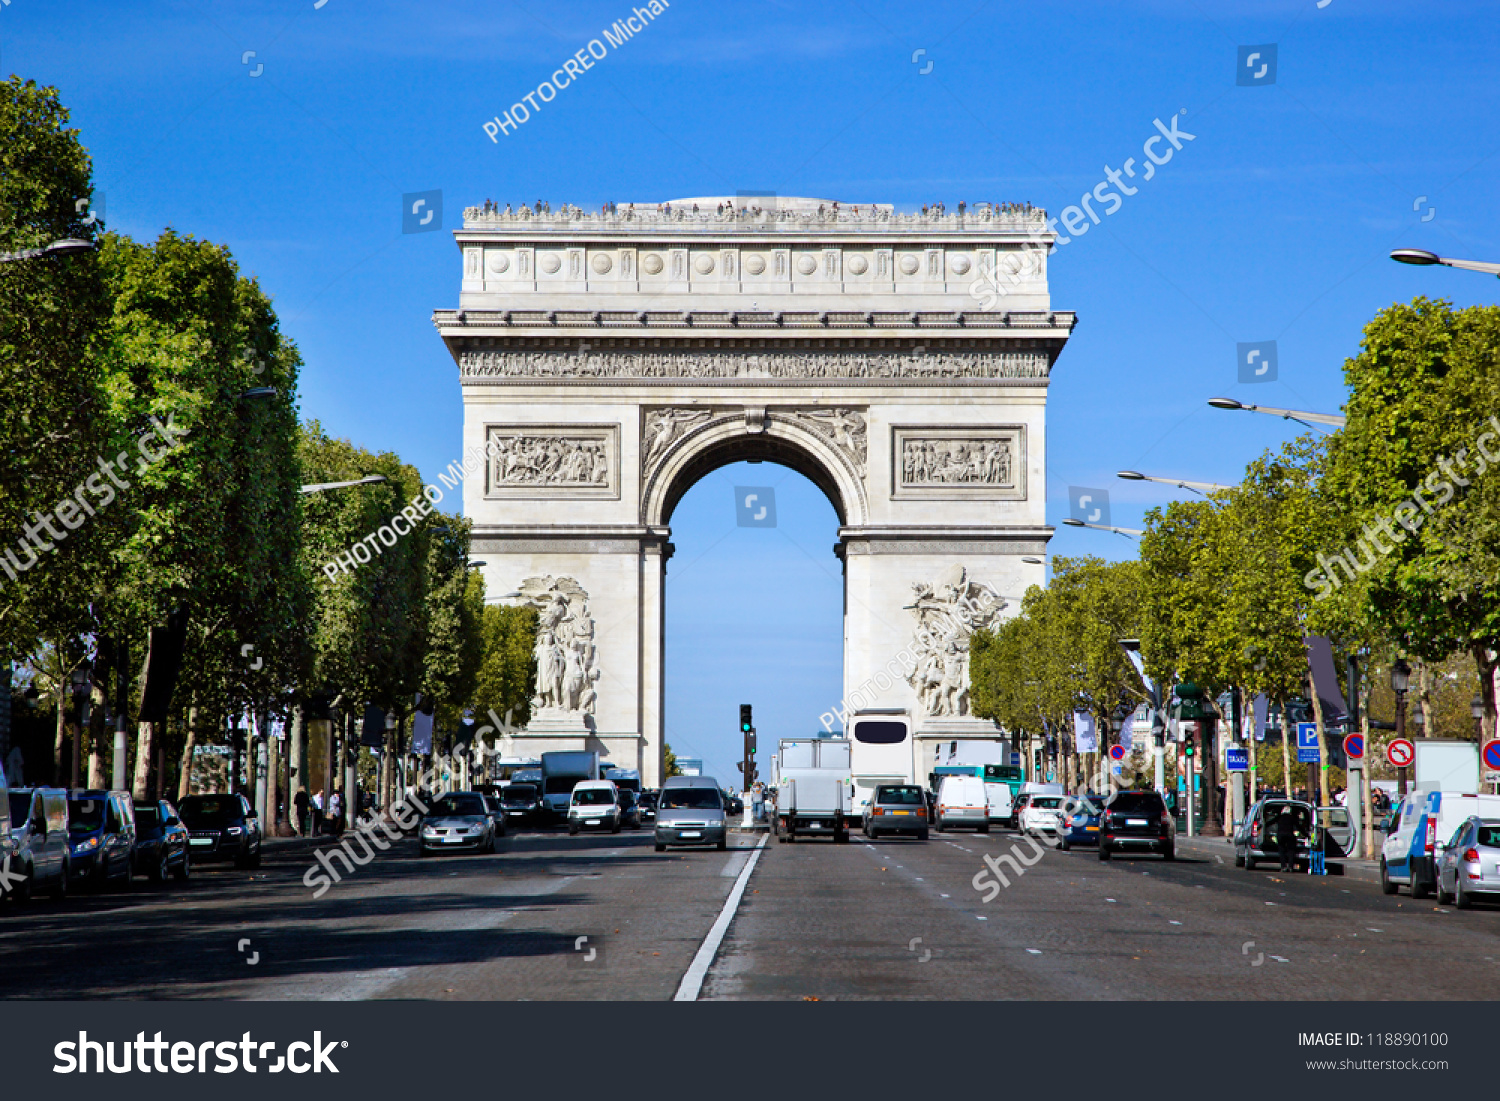 arc de triomphe paris france view from avenue des champs elysees stock photo 118890100. Black Bedroom Furniture Sets. Home Design Ideas